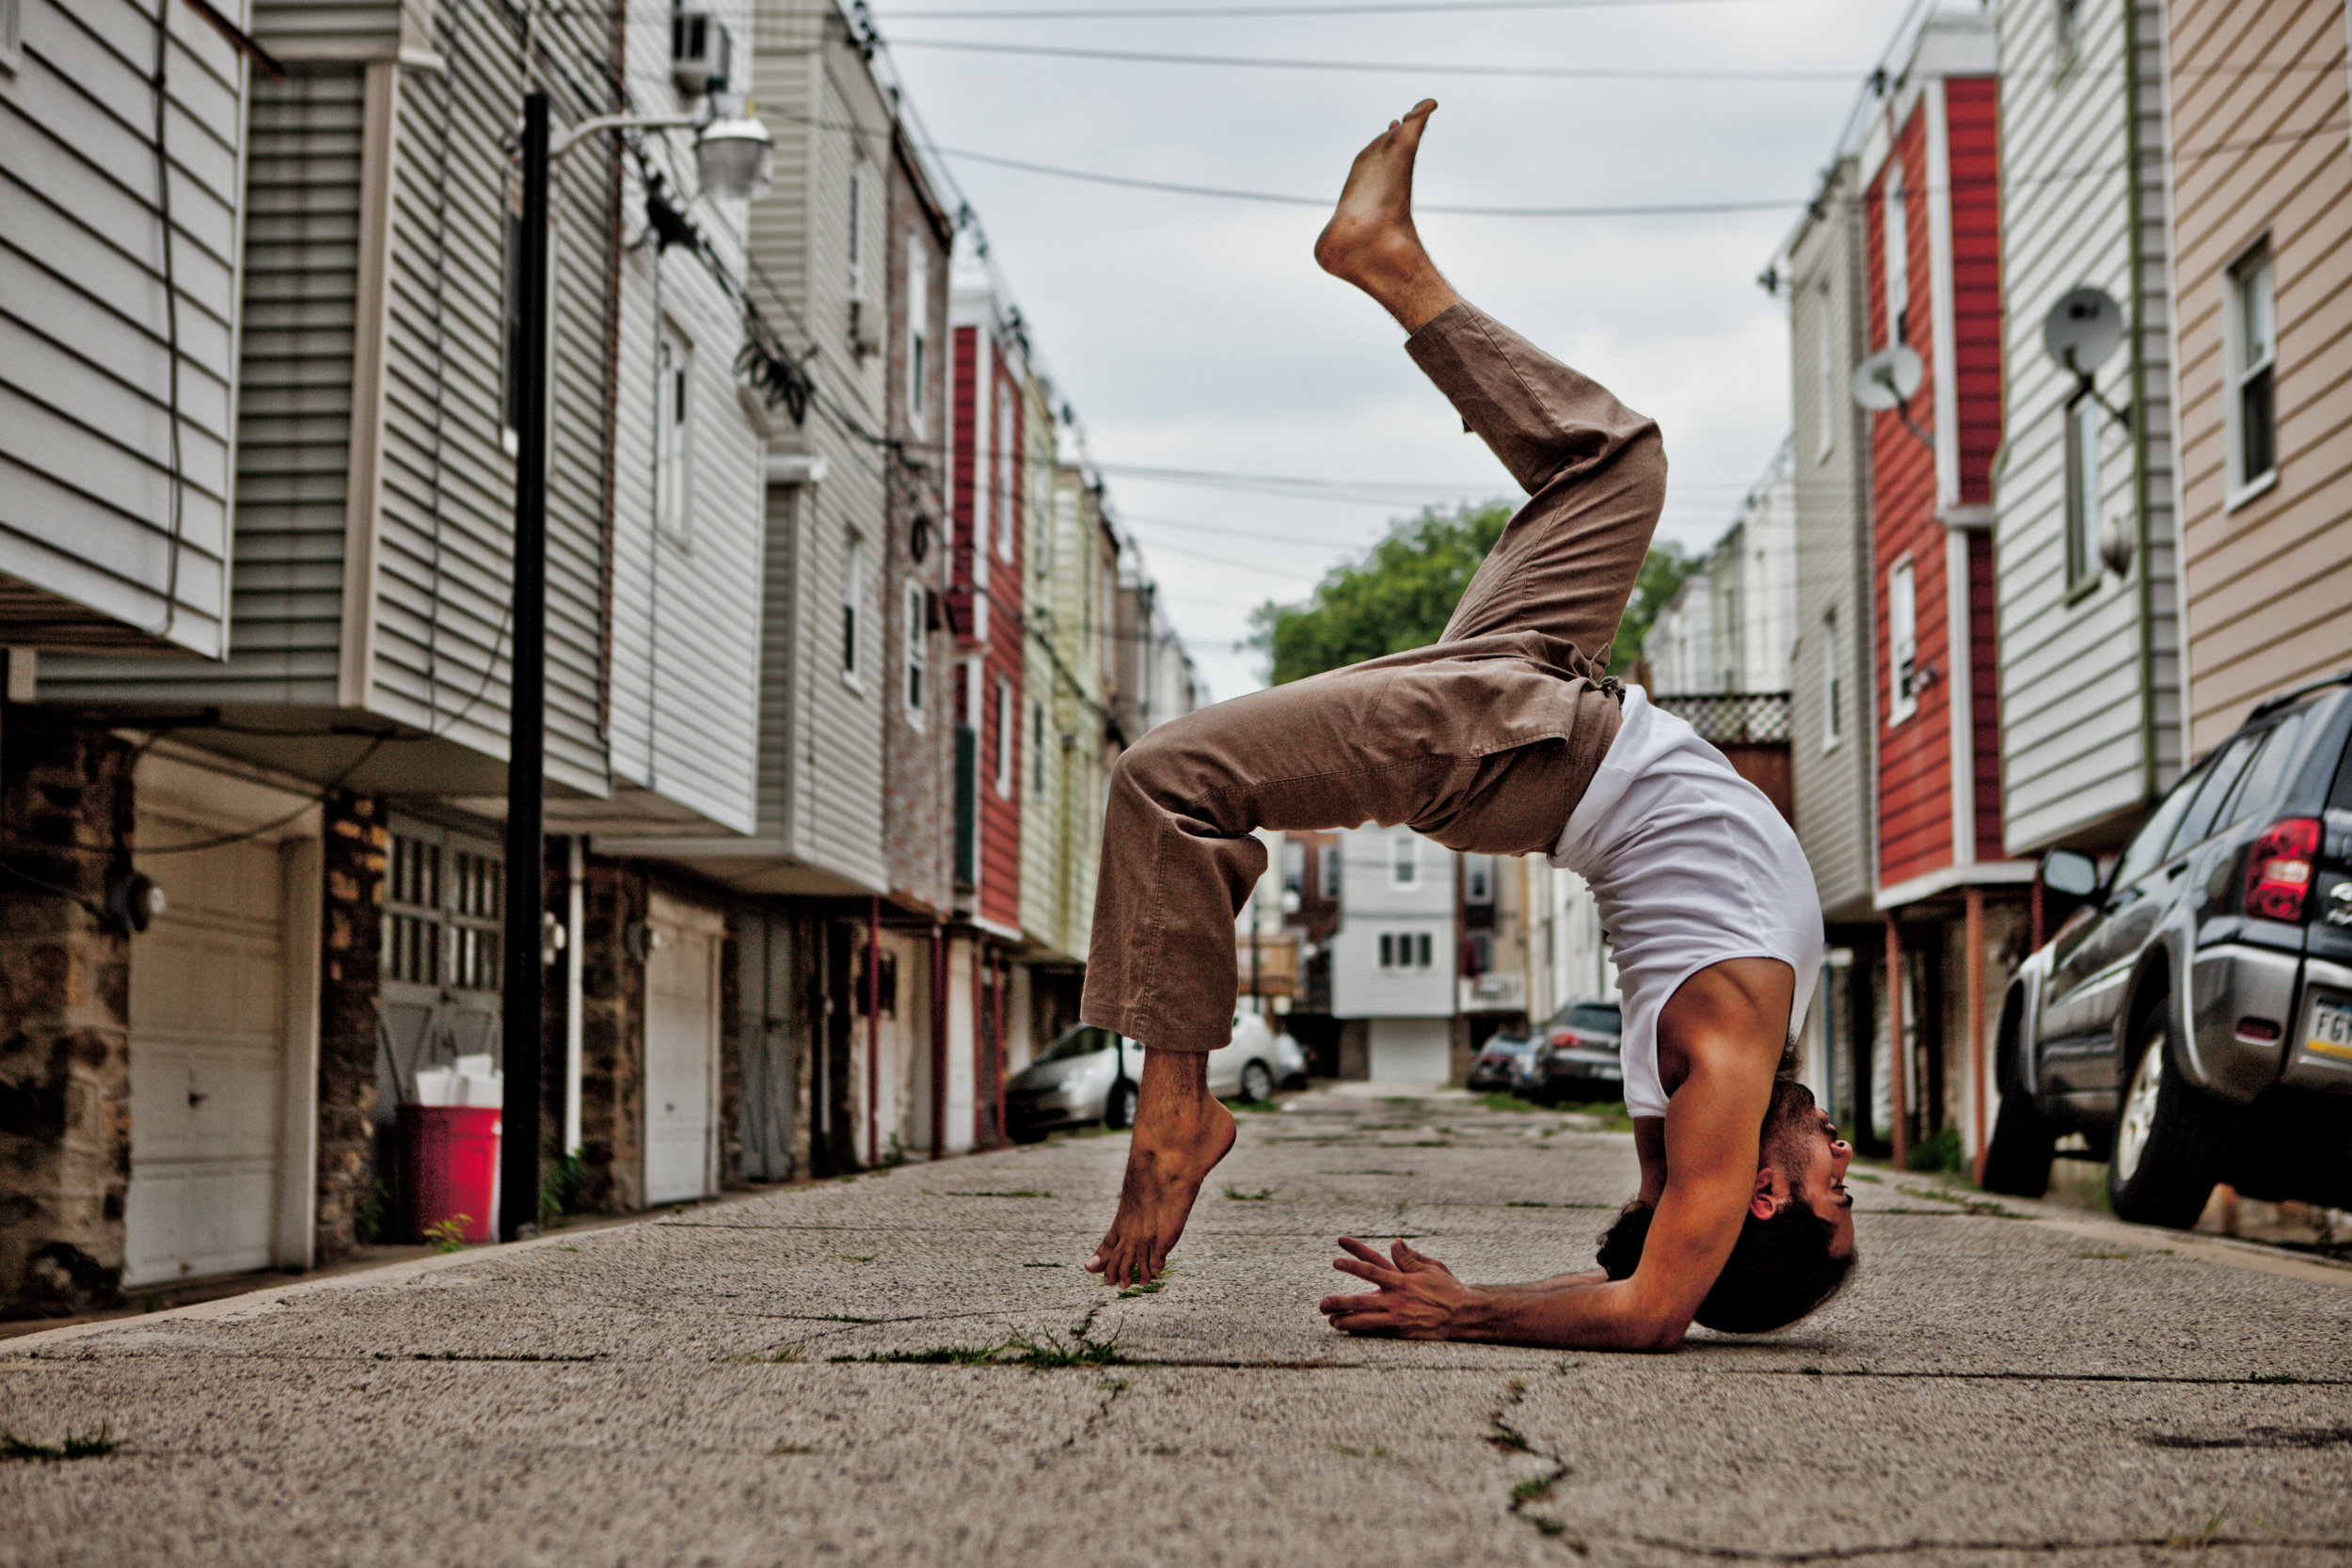 When Noah and I first started creating in 2012 he was a little shy and needed a little coaxing in front of the camera. As you can see from the images the shyness only lasted about 15 minutes. By the end of our first shoot, I was making requests for one-handed handstands and playing in the middle of the road. Needless to say over the years Noah has become an amazing friend and teacher. Enjoy the stroll down memory lane. If you are interested in learning how to grow your yoga and movement practice check out Noah's offerings at  The Yoga and Movement Sanctuary.